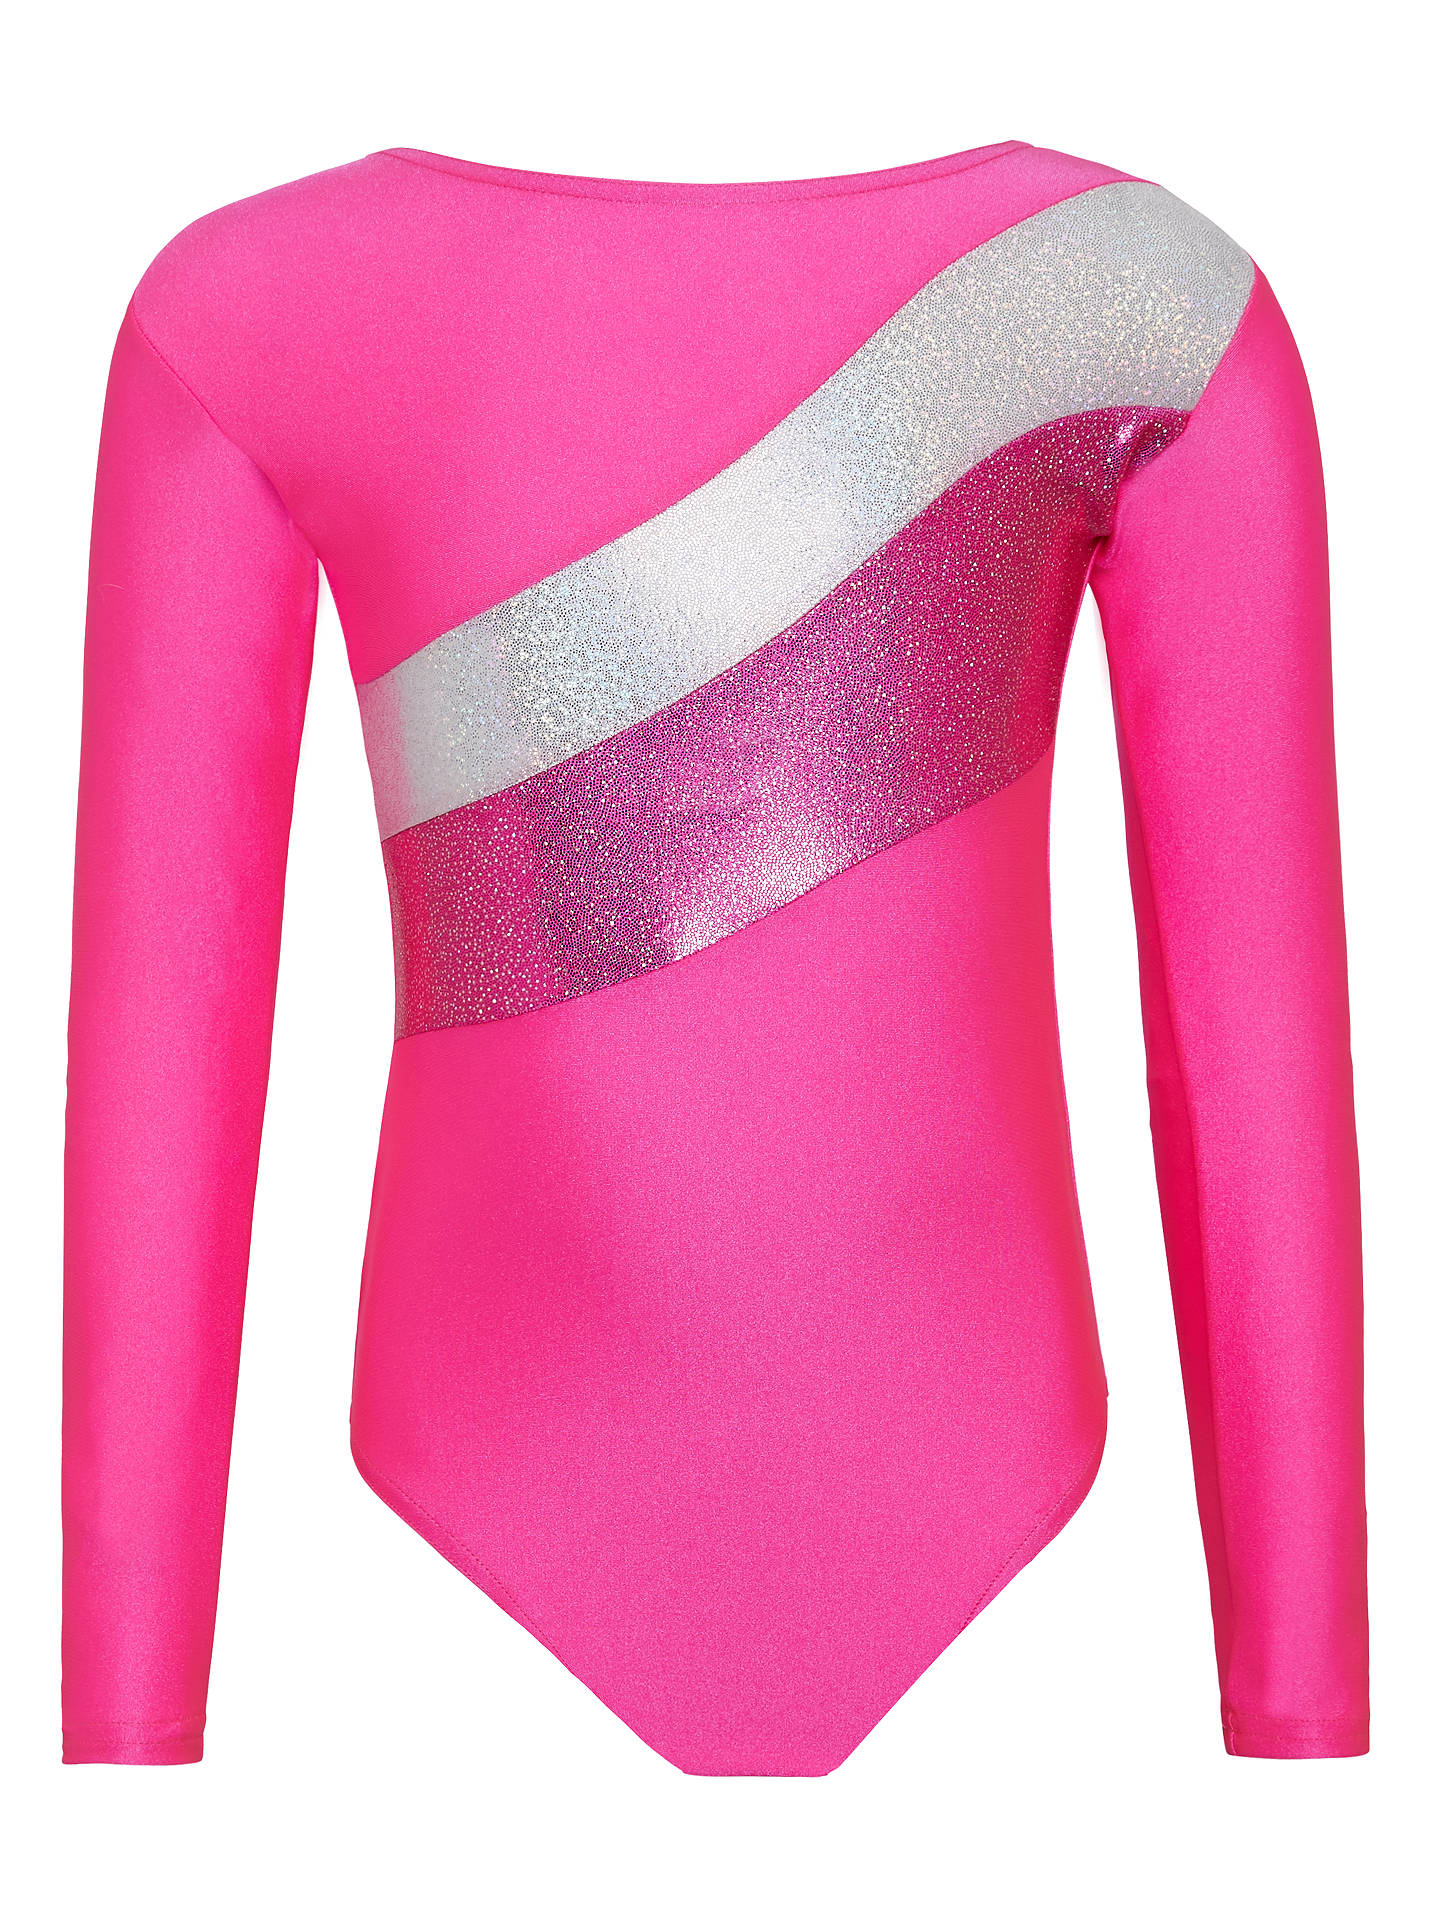 c15c279a2431 Tappers and Pointers Sparkling Stripes Gymnastics Leotard at John ...